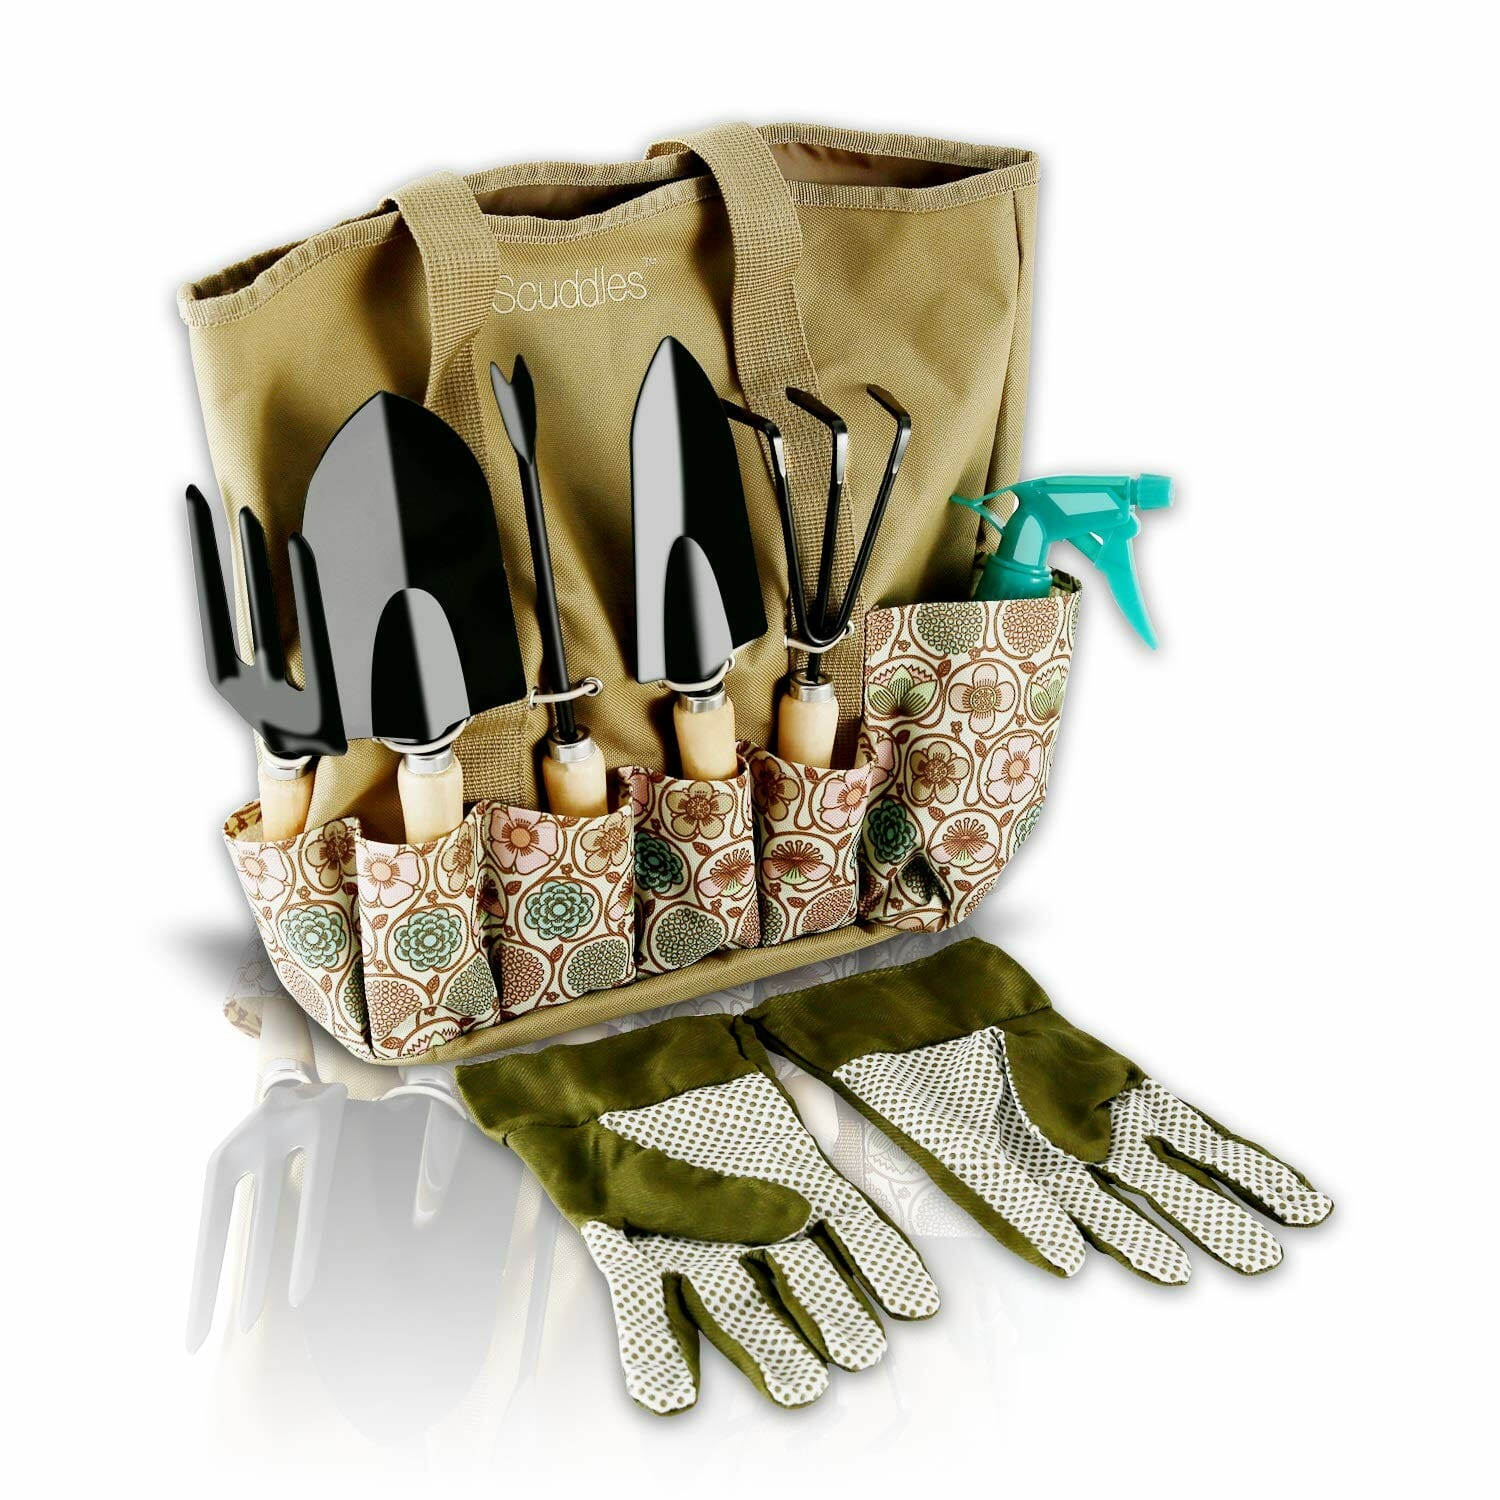 retirement-gifts-for-women-gardening-set